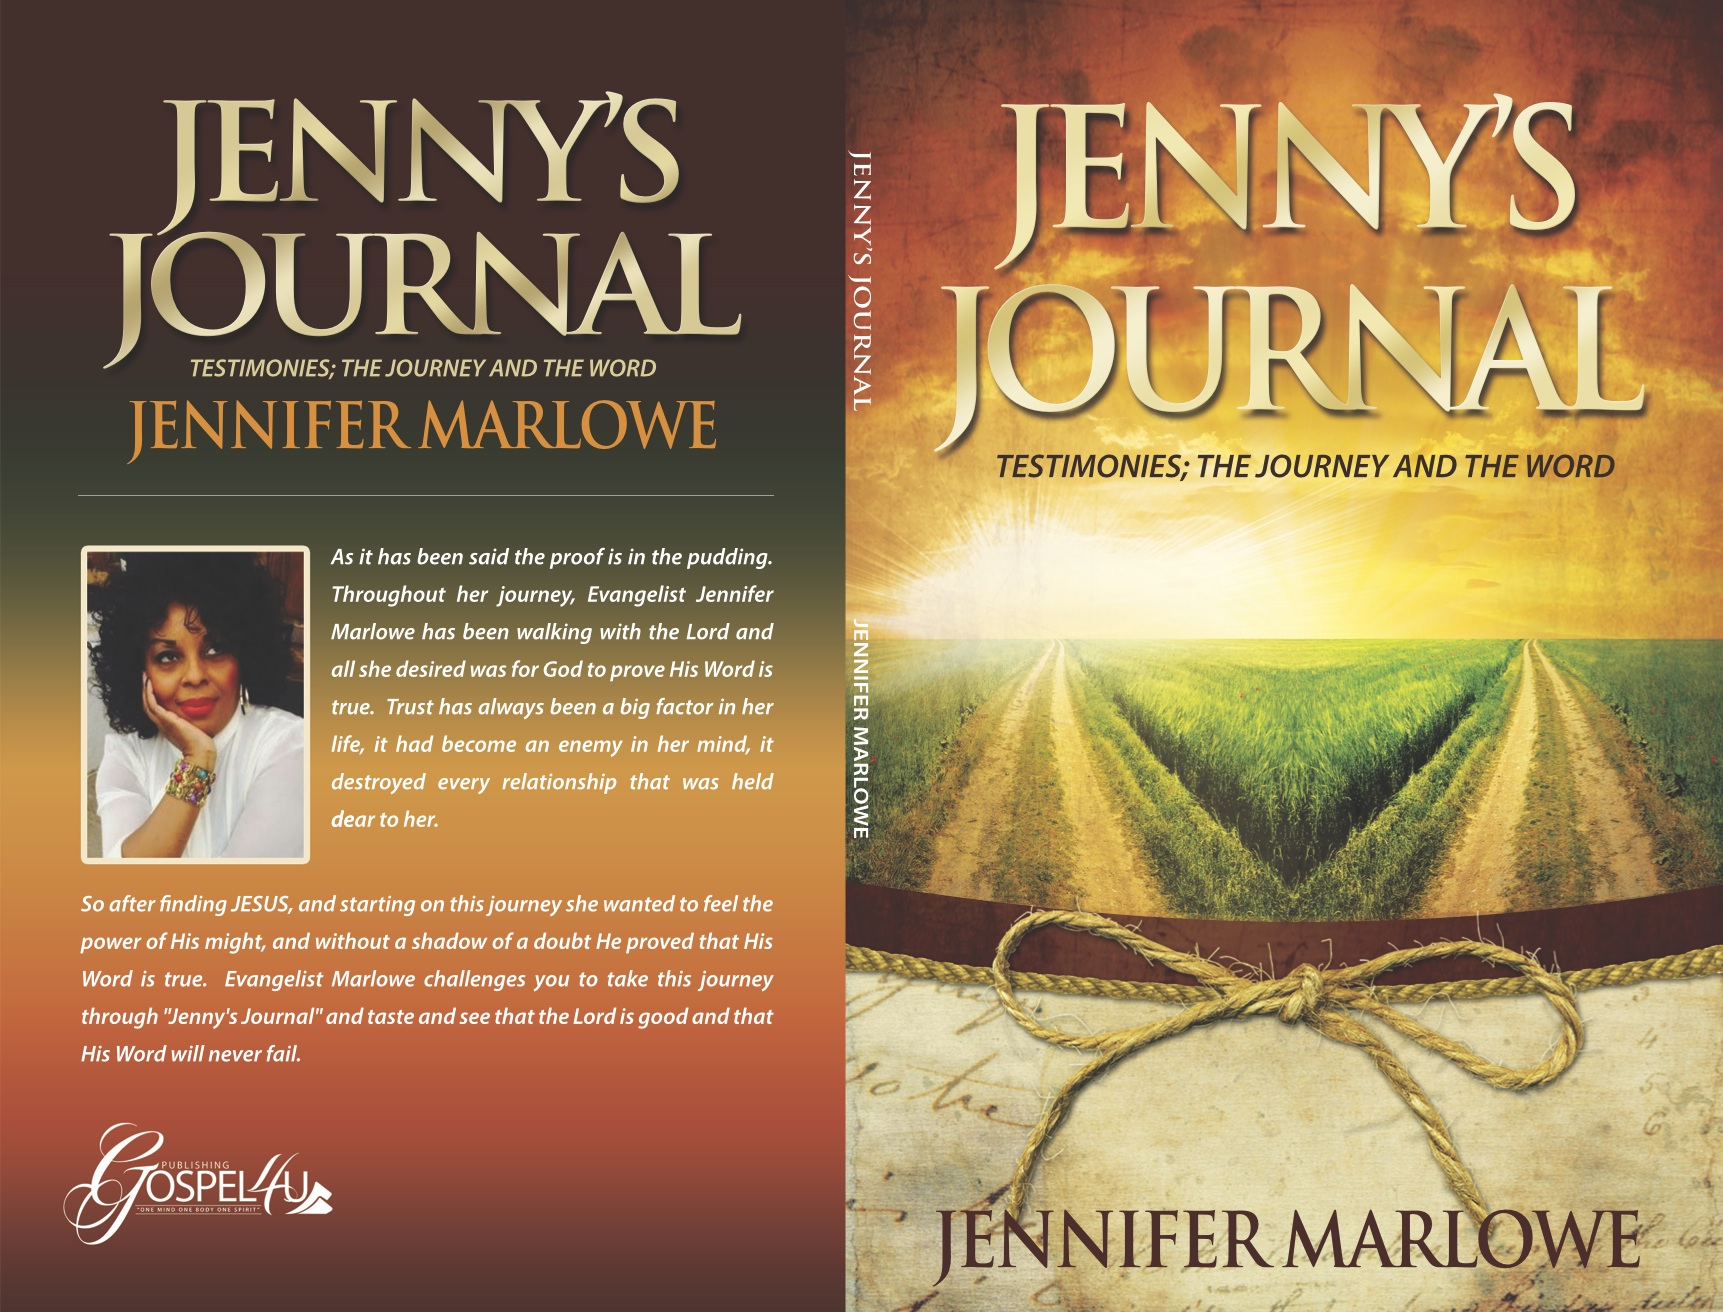 Jenny's Journal